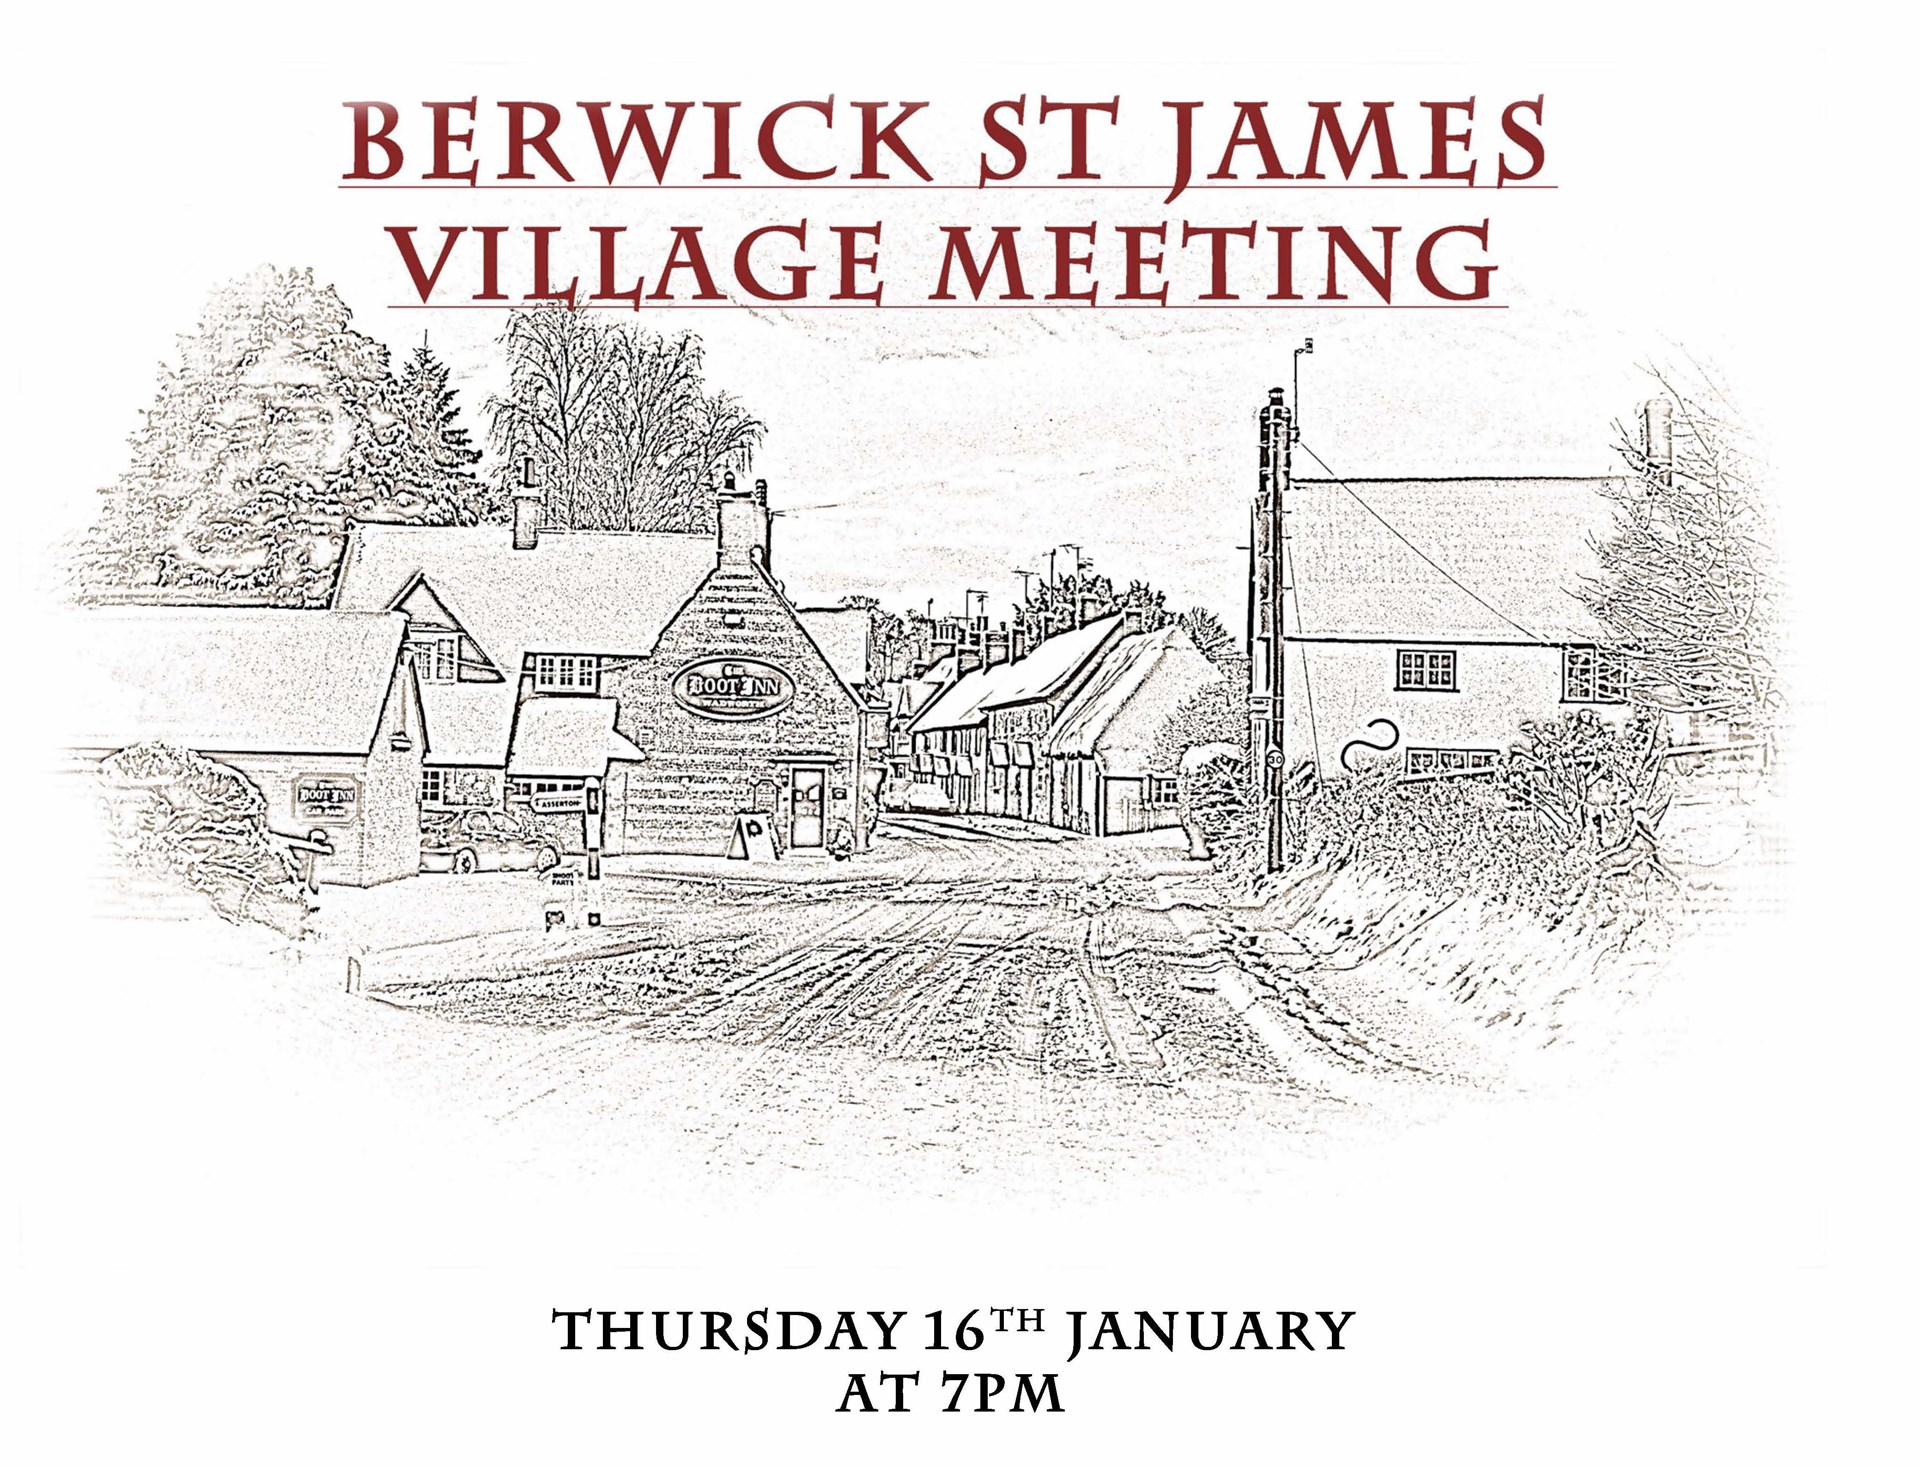 Berwick St James Parish Village Meeting - 16 January '14